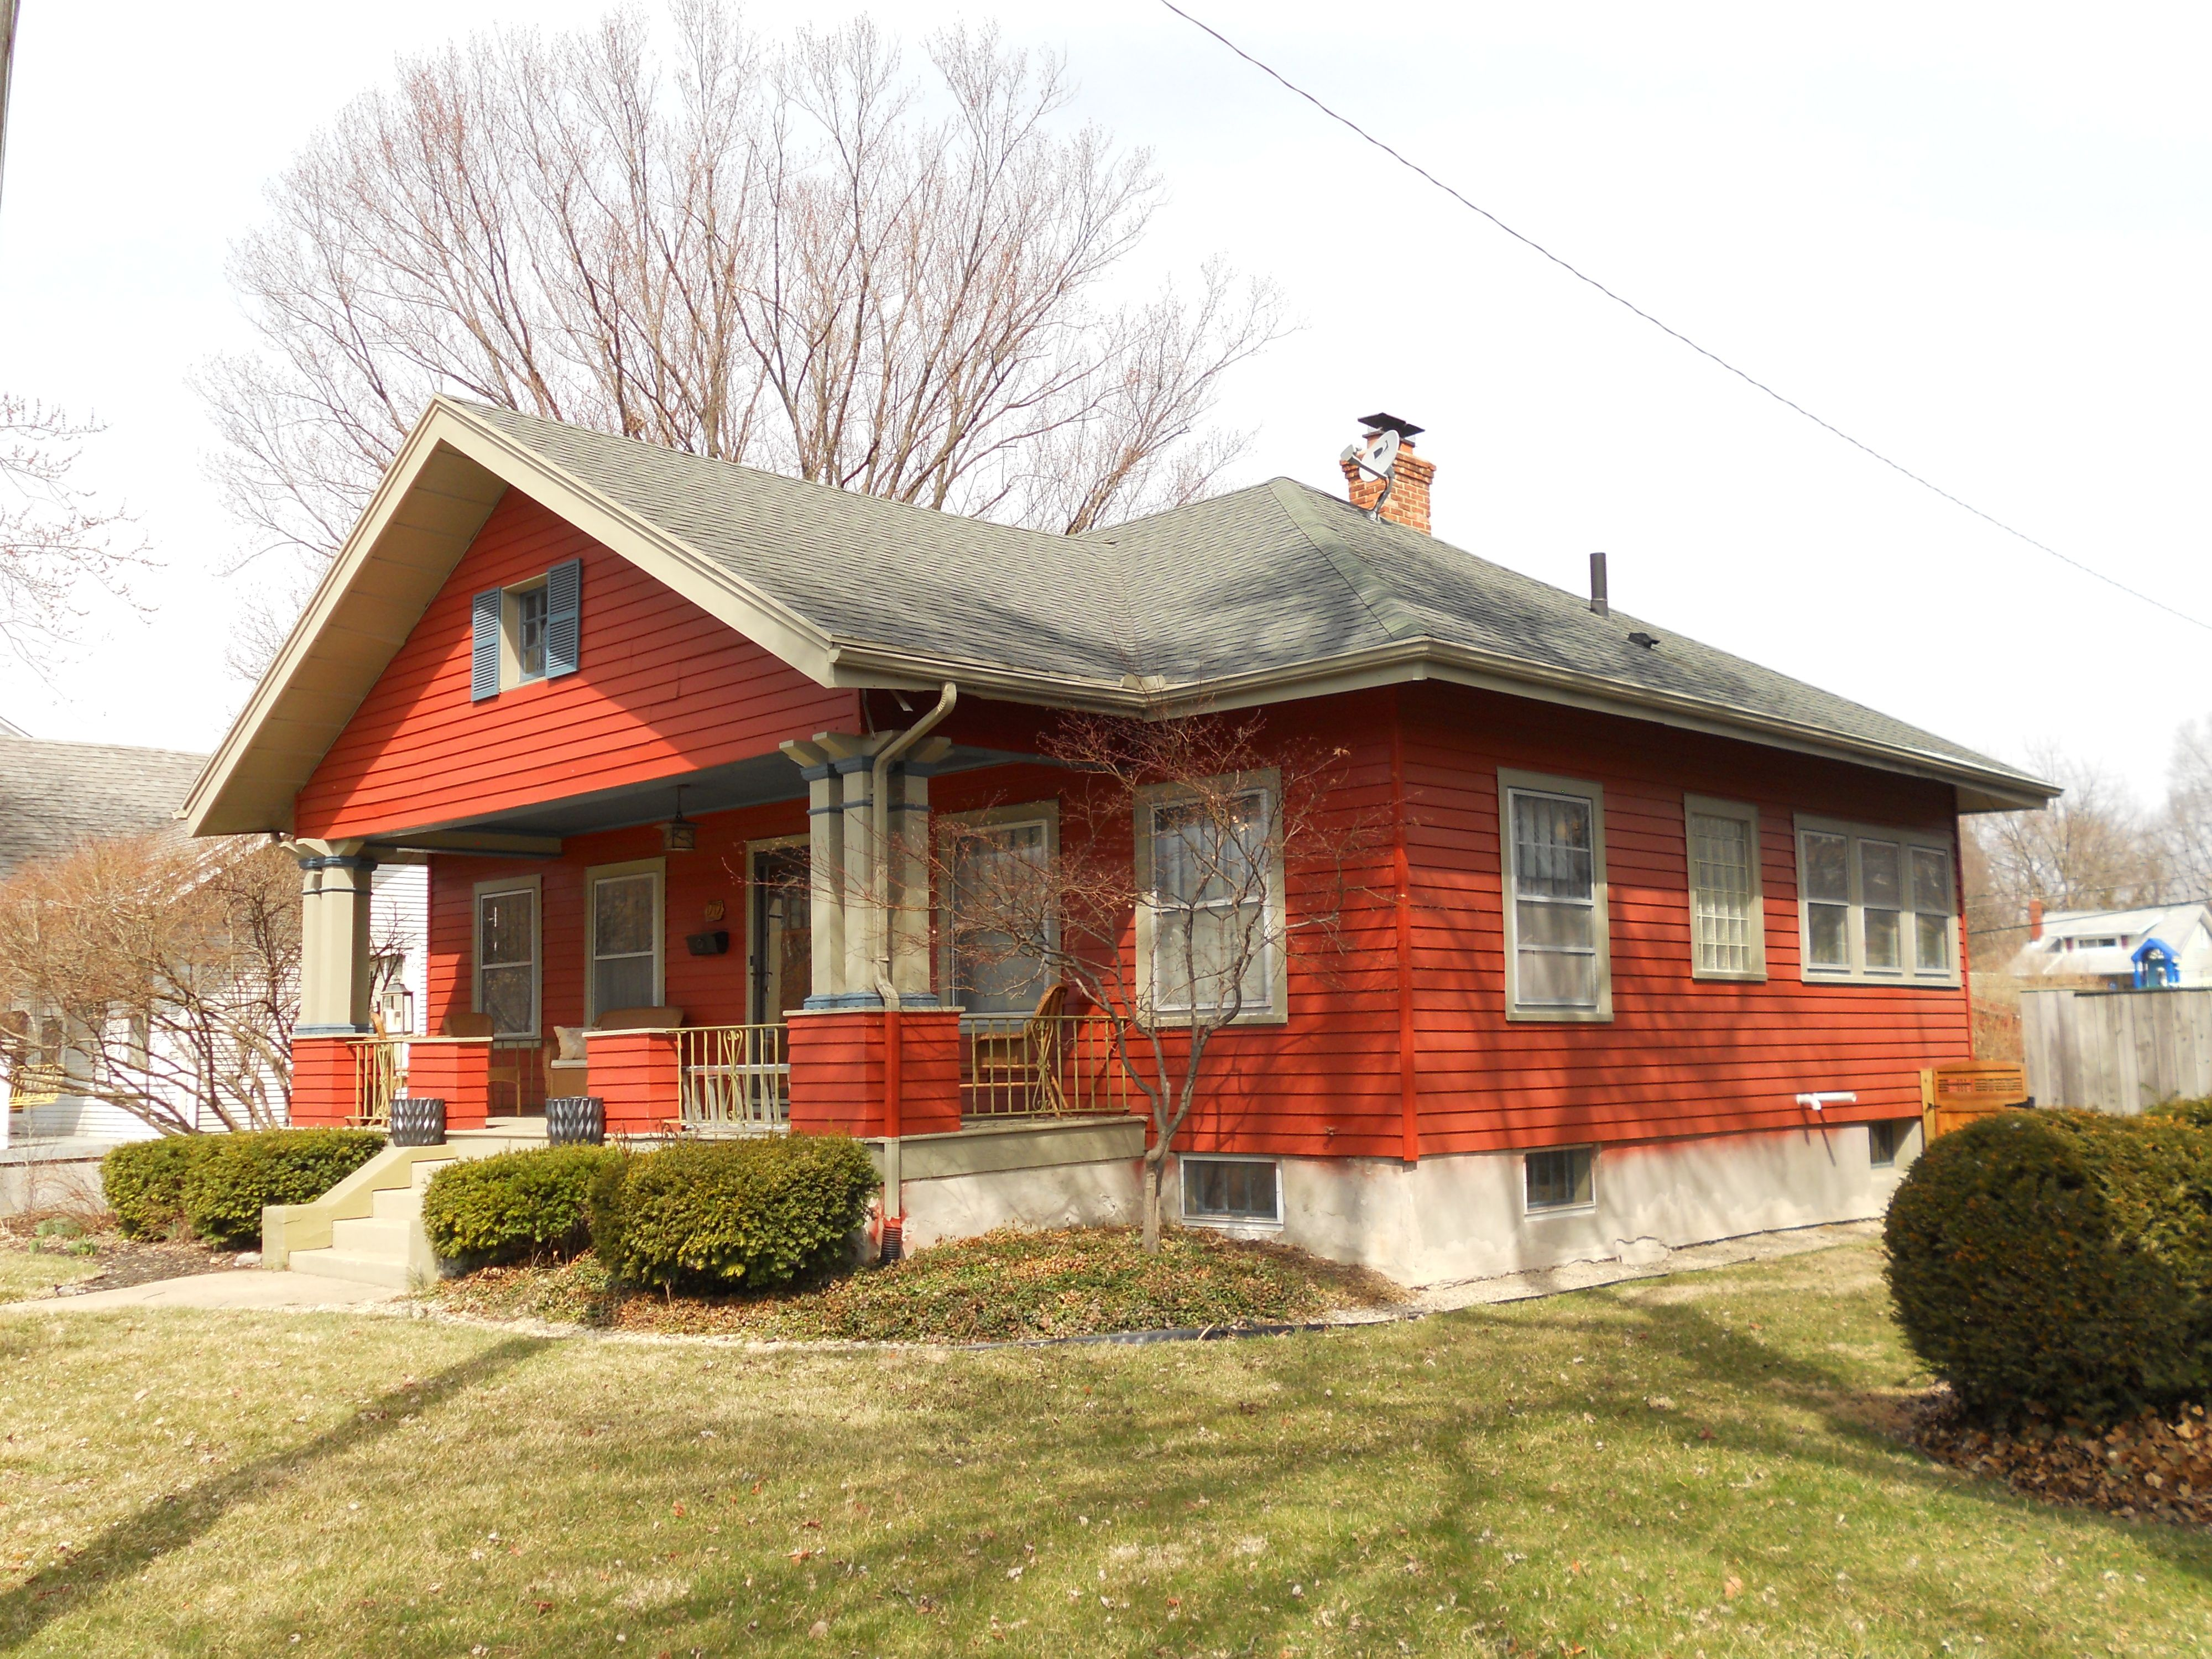 Sears Elsmore In Kettering Ohio With Images House Styles Victorian Homes